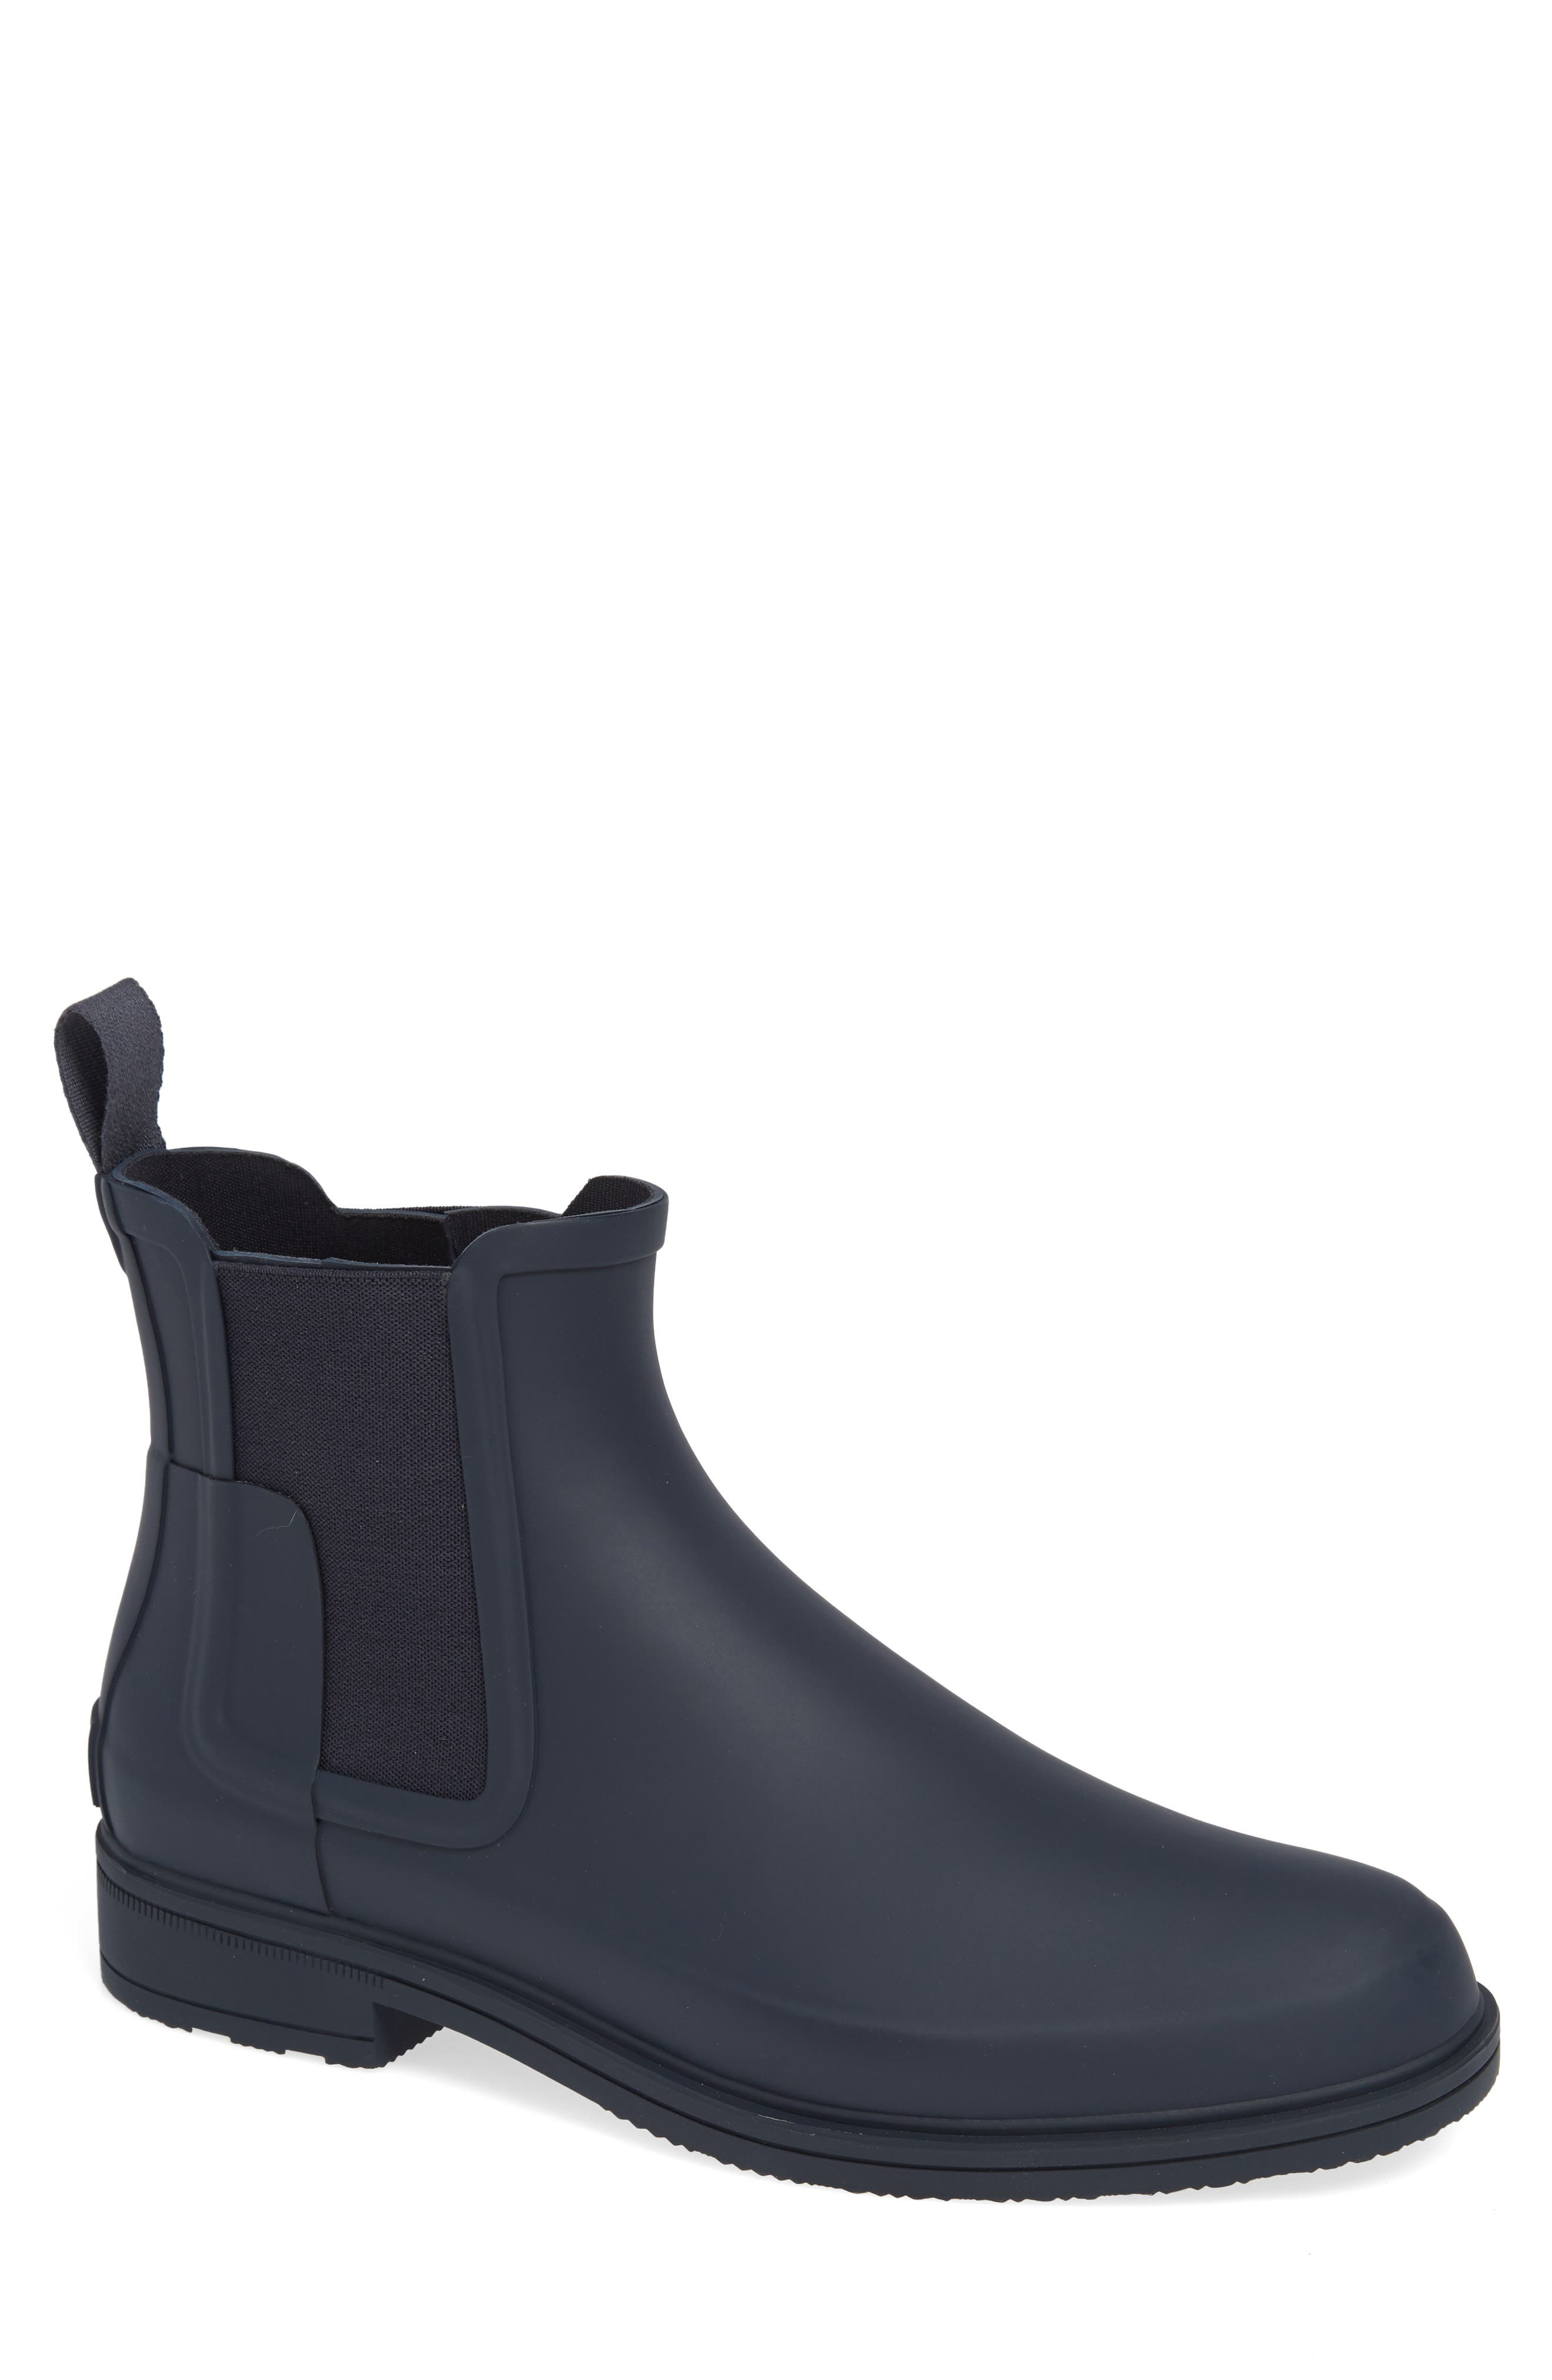 HUNTER, Original Refined Waterproof Chelsea Boot, Main thumbnail 1, color, NAVY RUBBER